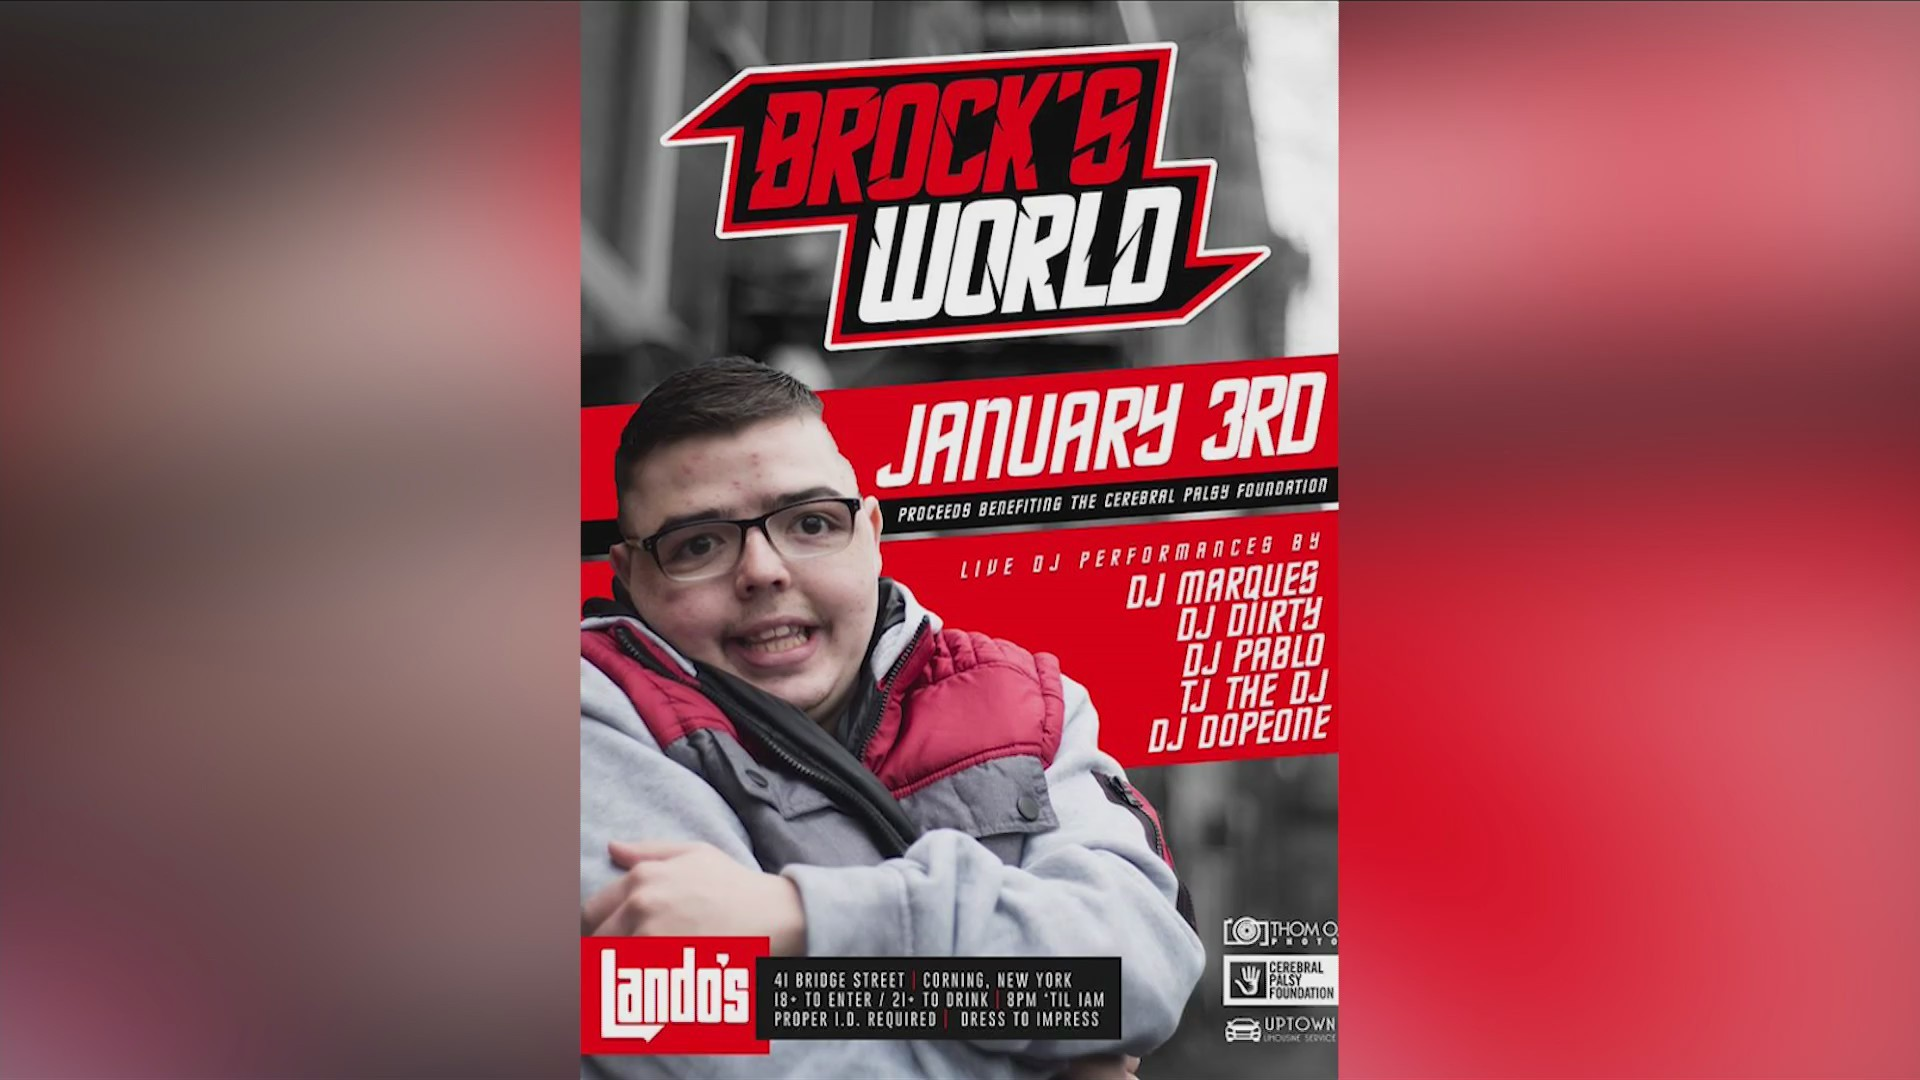 A_look_into_Brock_s_World_0_20181221232458